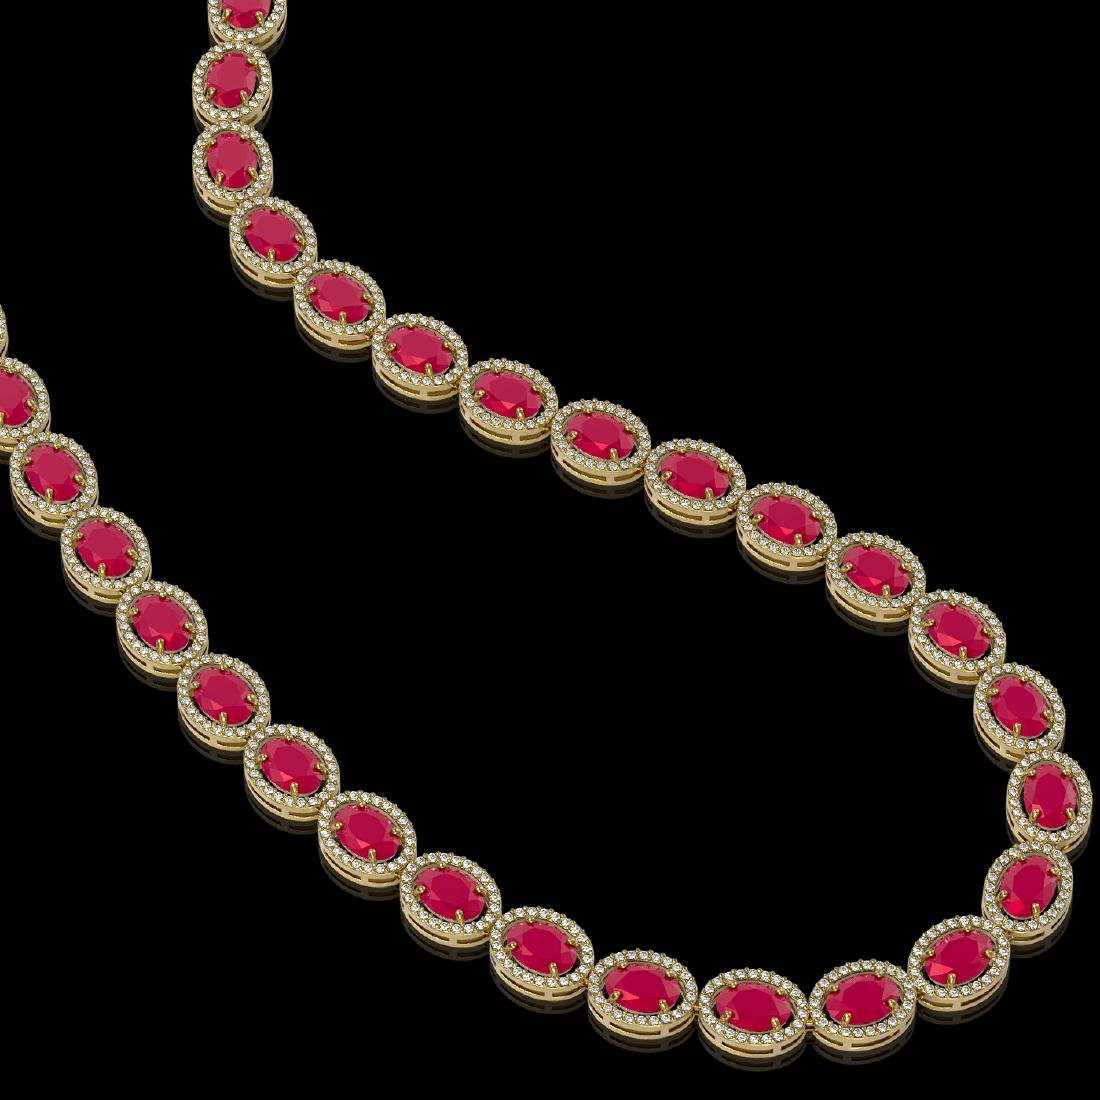 52.15 CTW Ruby & Diamond Halo Necklace 10K Yellow Gold - 2